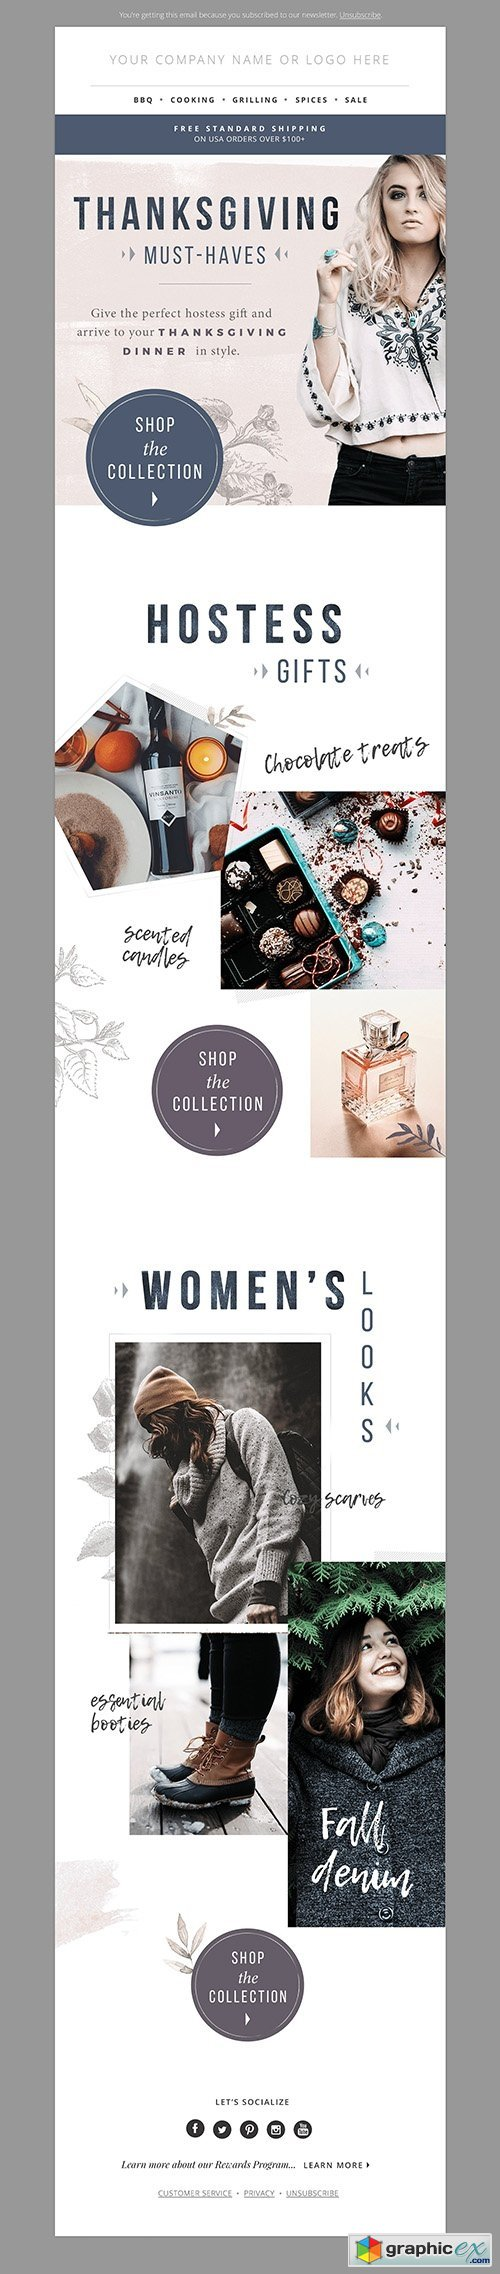 Gift Guide E-mail Template PSD